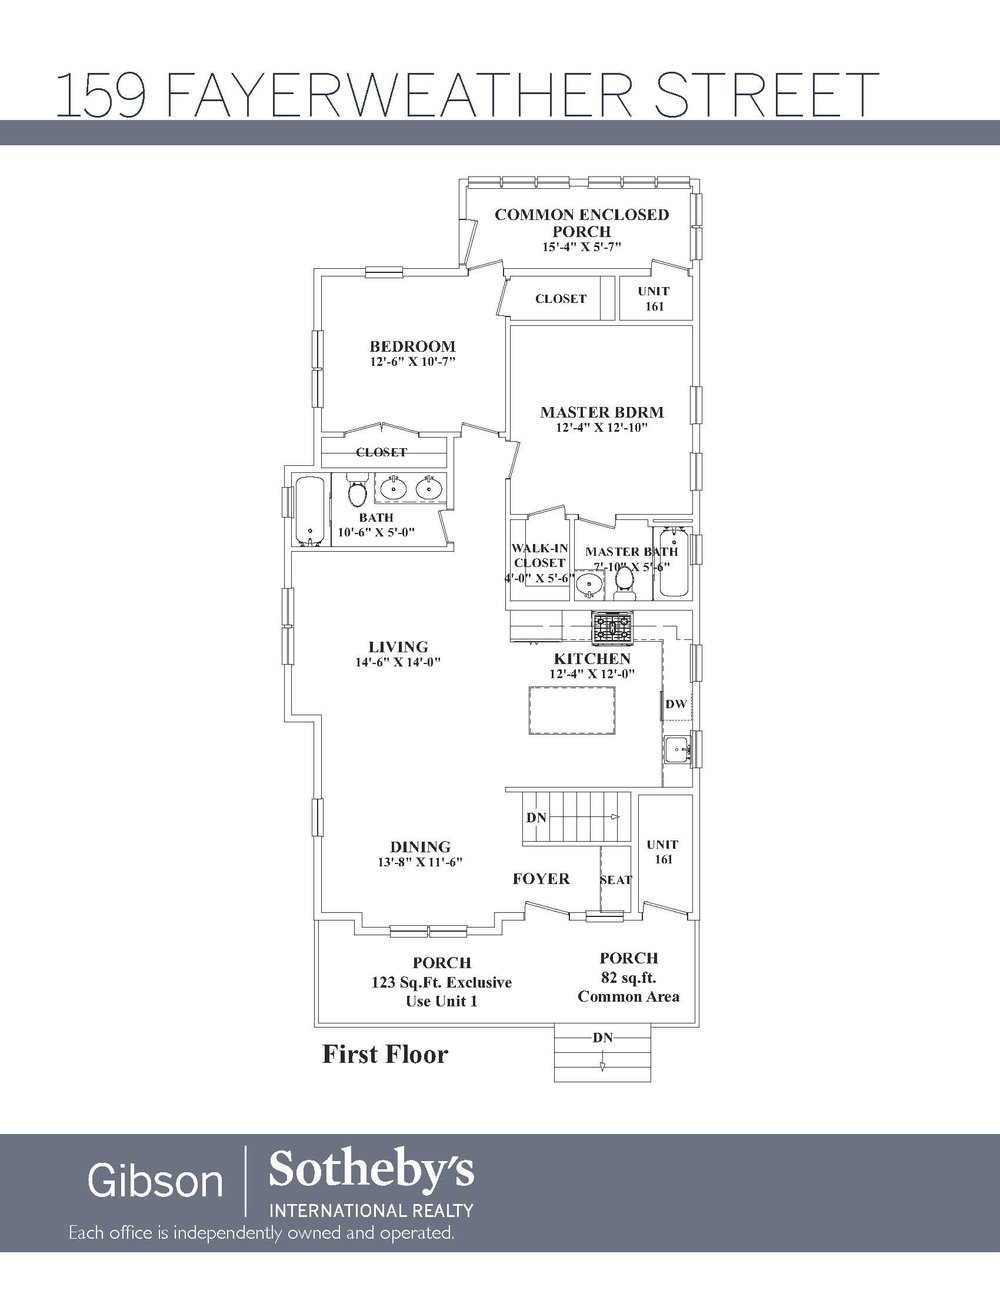 159 Fayerweather Street Branded Floor Plans for Website_Page_1.jpg